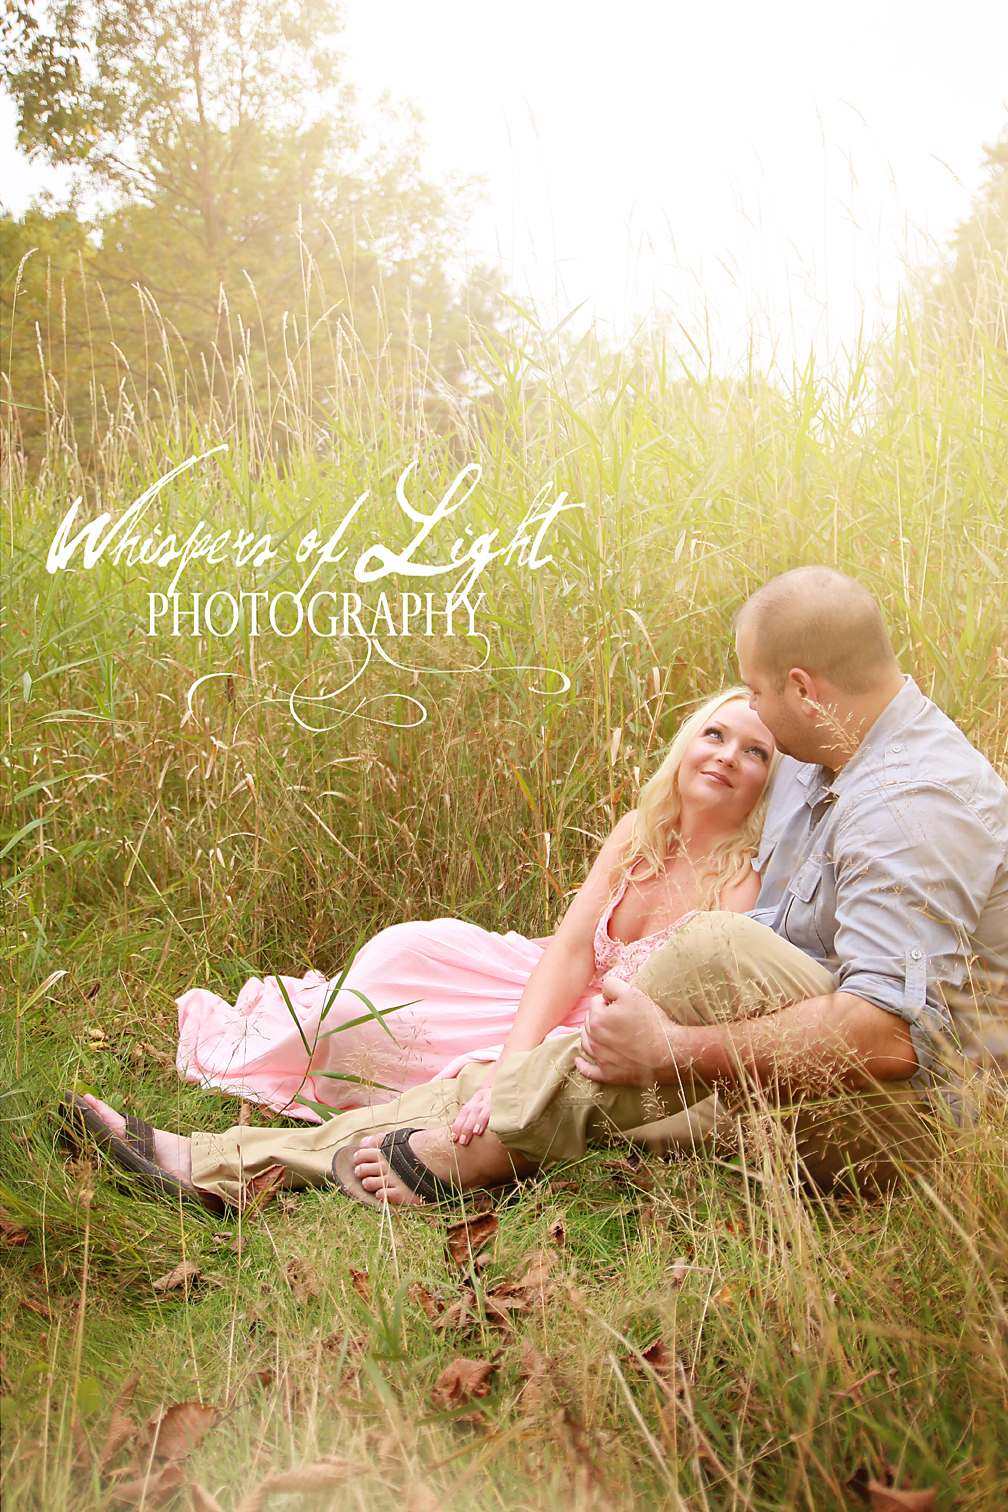 JenJustinEngaged - Whispers of Light Photography (44) copy